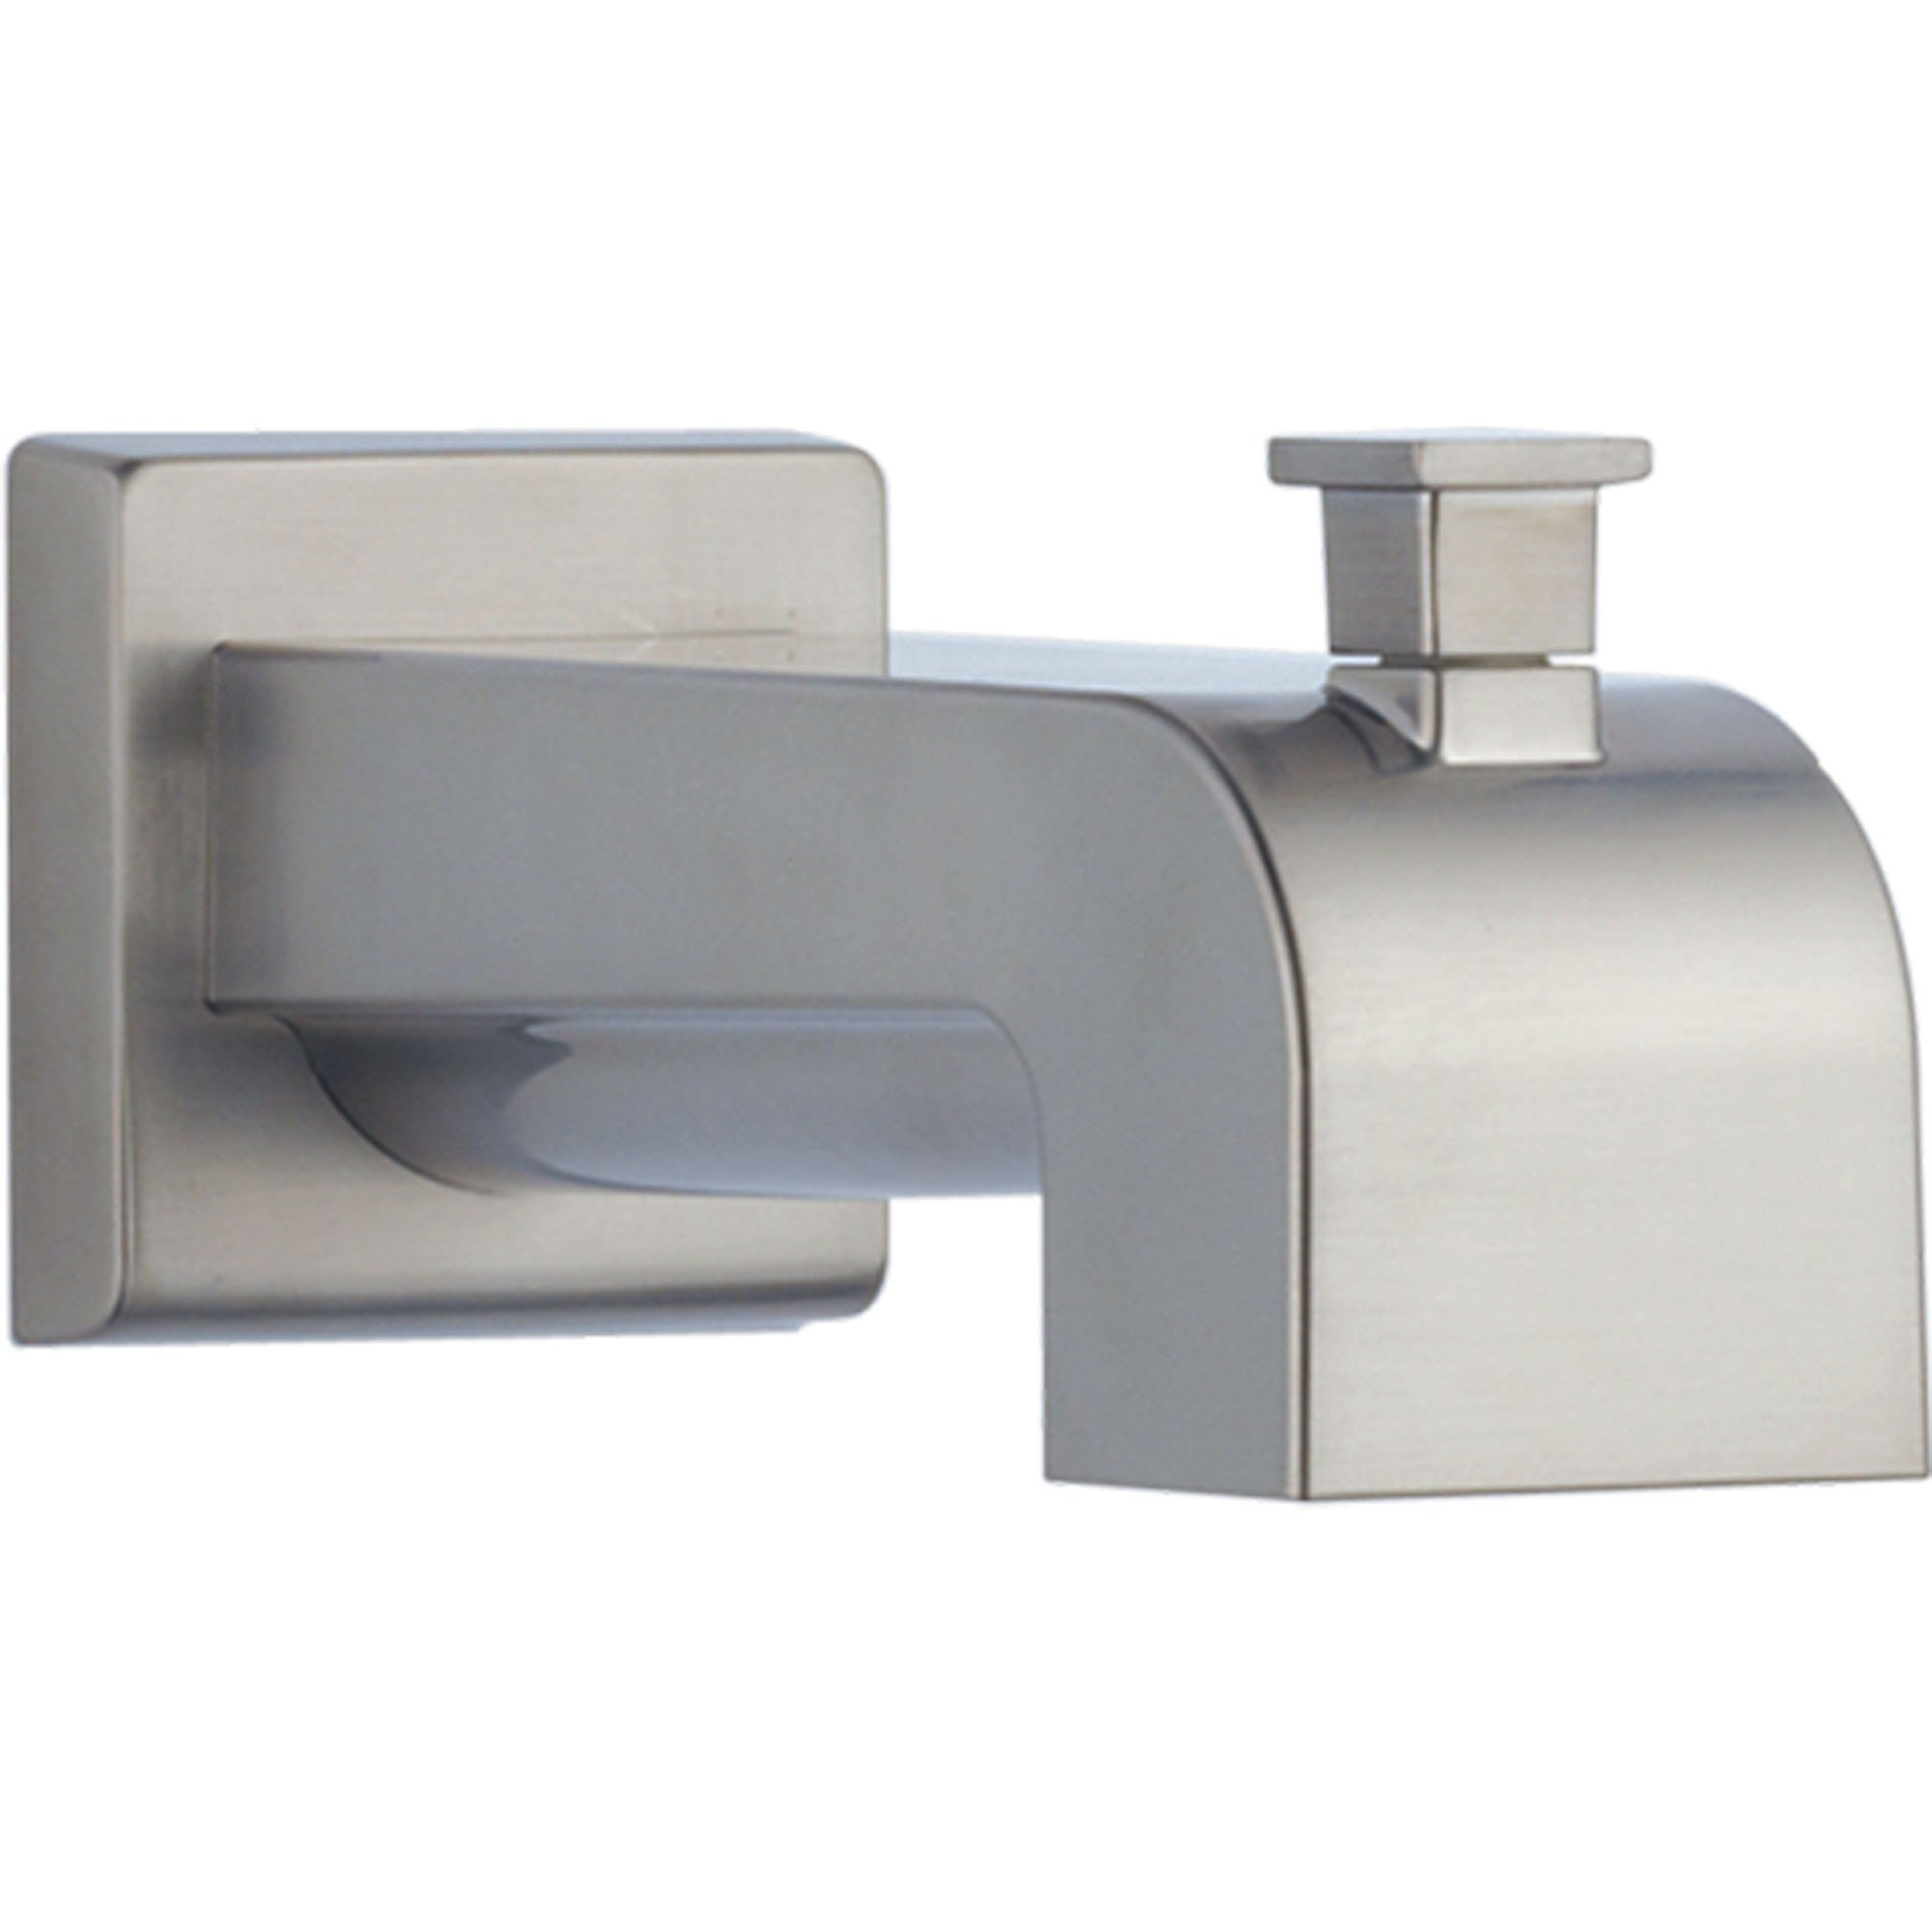 "Delta Arzo 7.13"" Modern Stainless Steel Finish Pull-Up Diverter Tub Spout 588659"